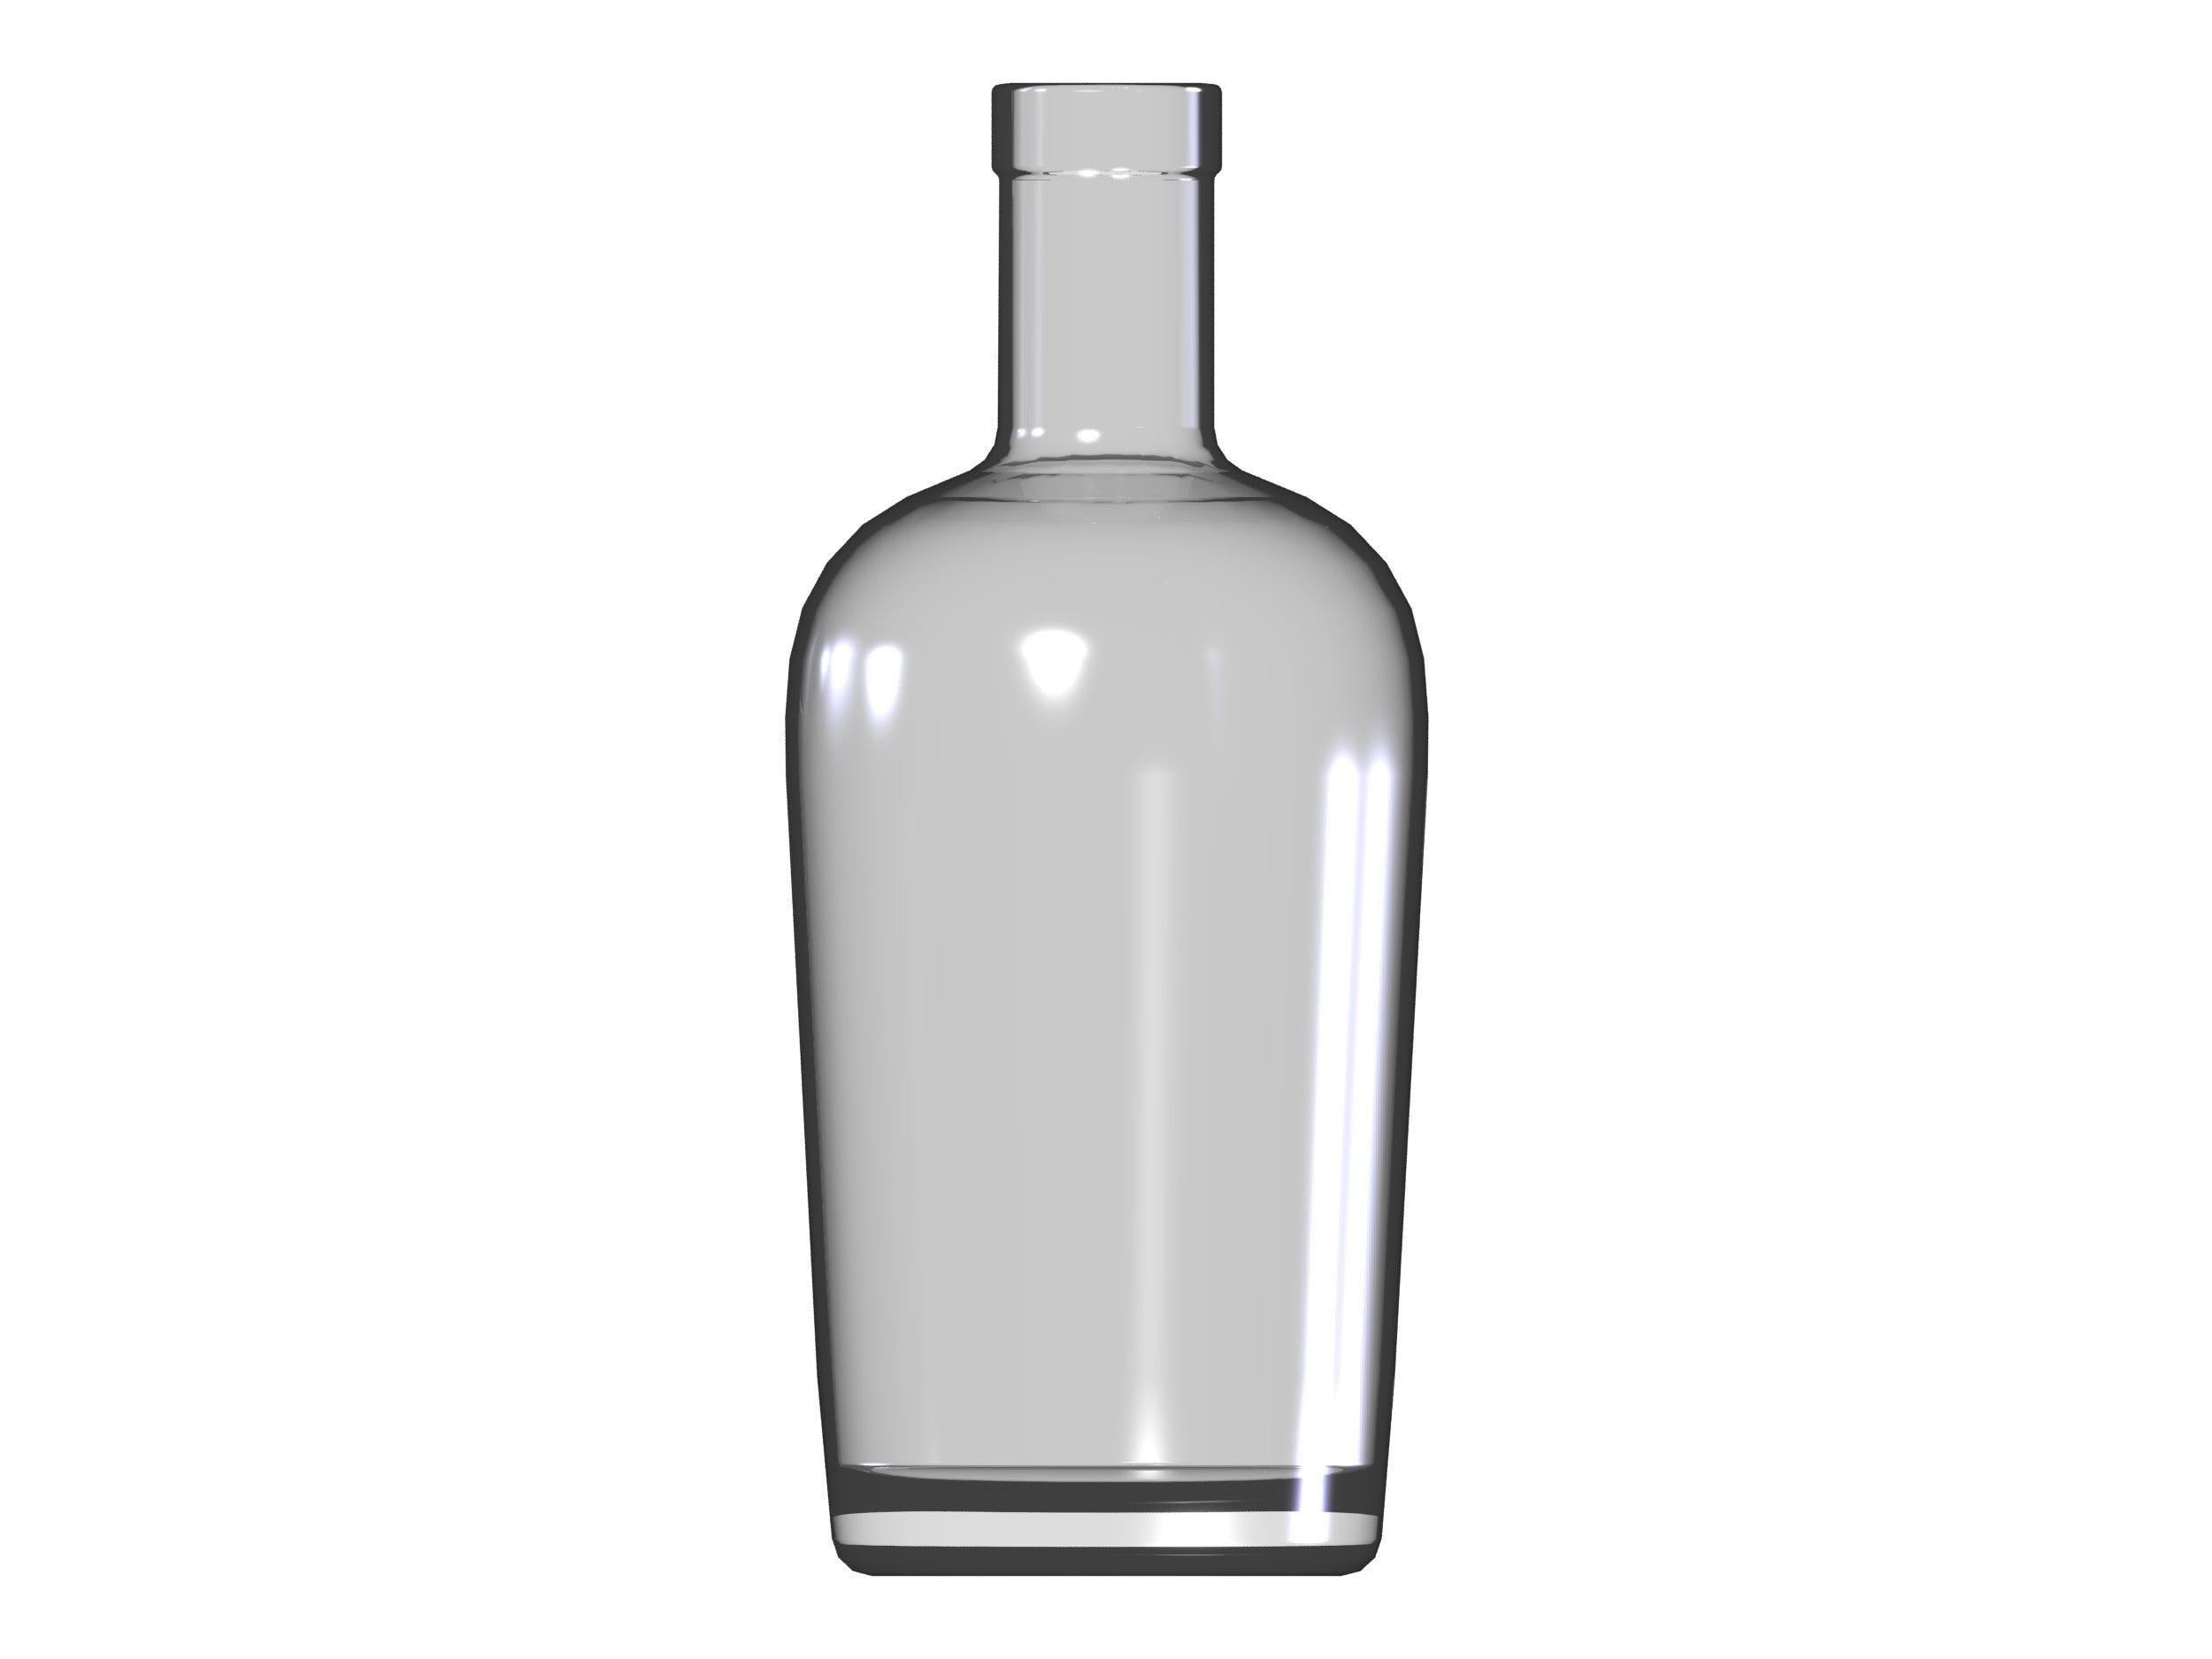 Teo Liquor bottle sold by Global Package, LLC